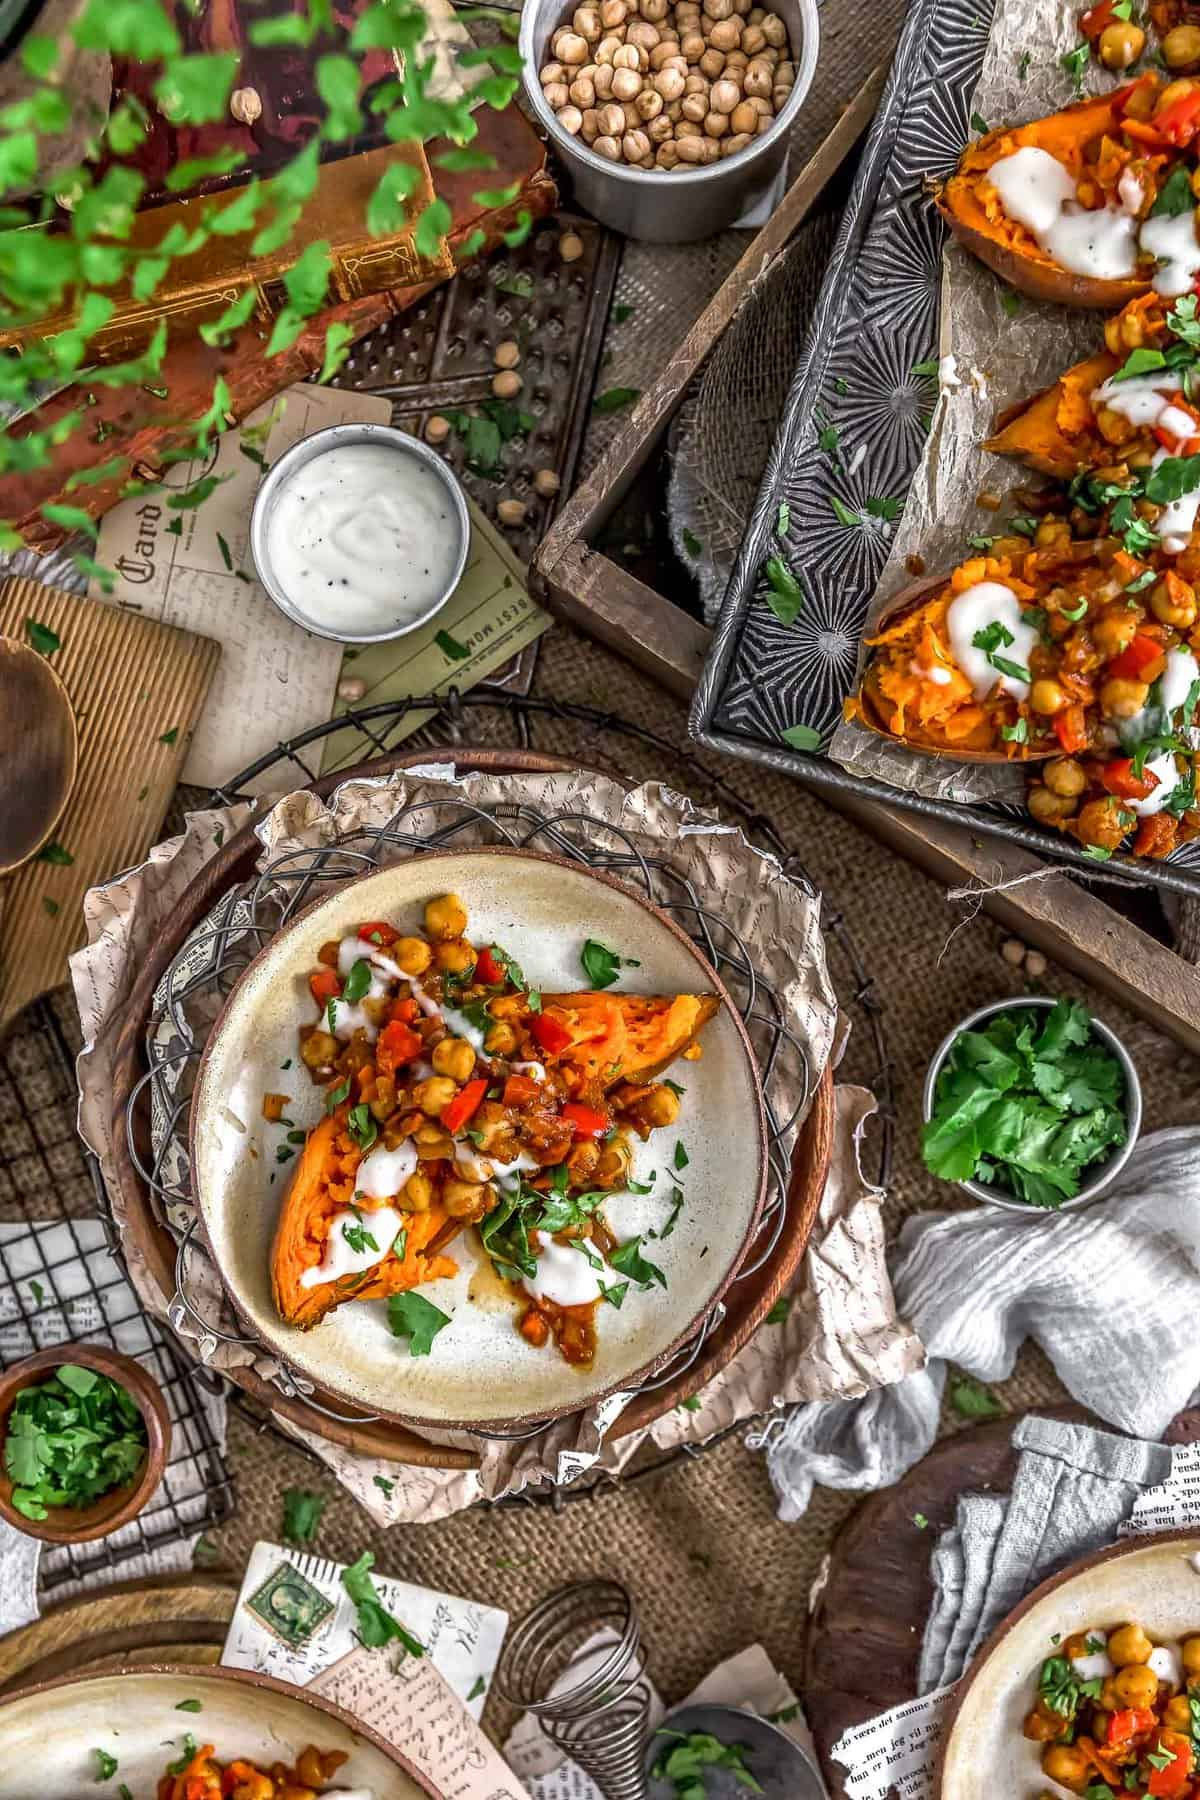 Tablescape of Moroccan Spiced Chickpeas and Garlic Sauce over sweet potatoes